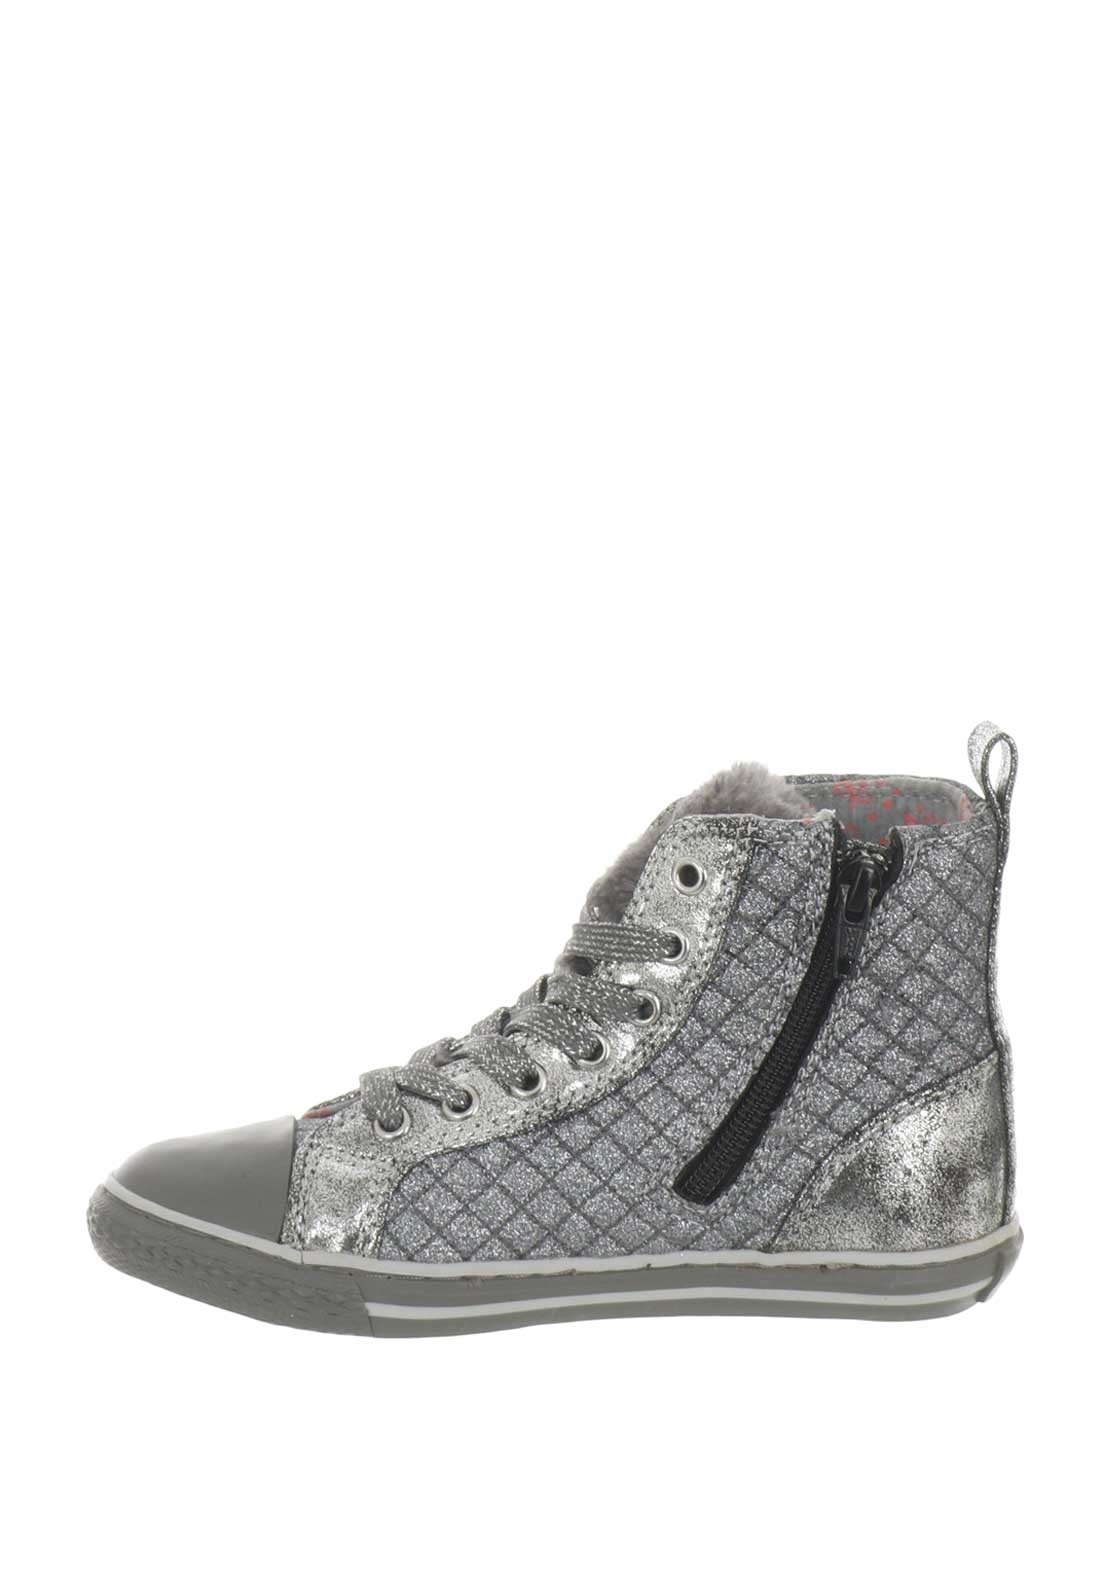 33c191d04803 Primigi Girls Glitter Quilted Hi Top Trainers, Silver | McElhinneys